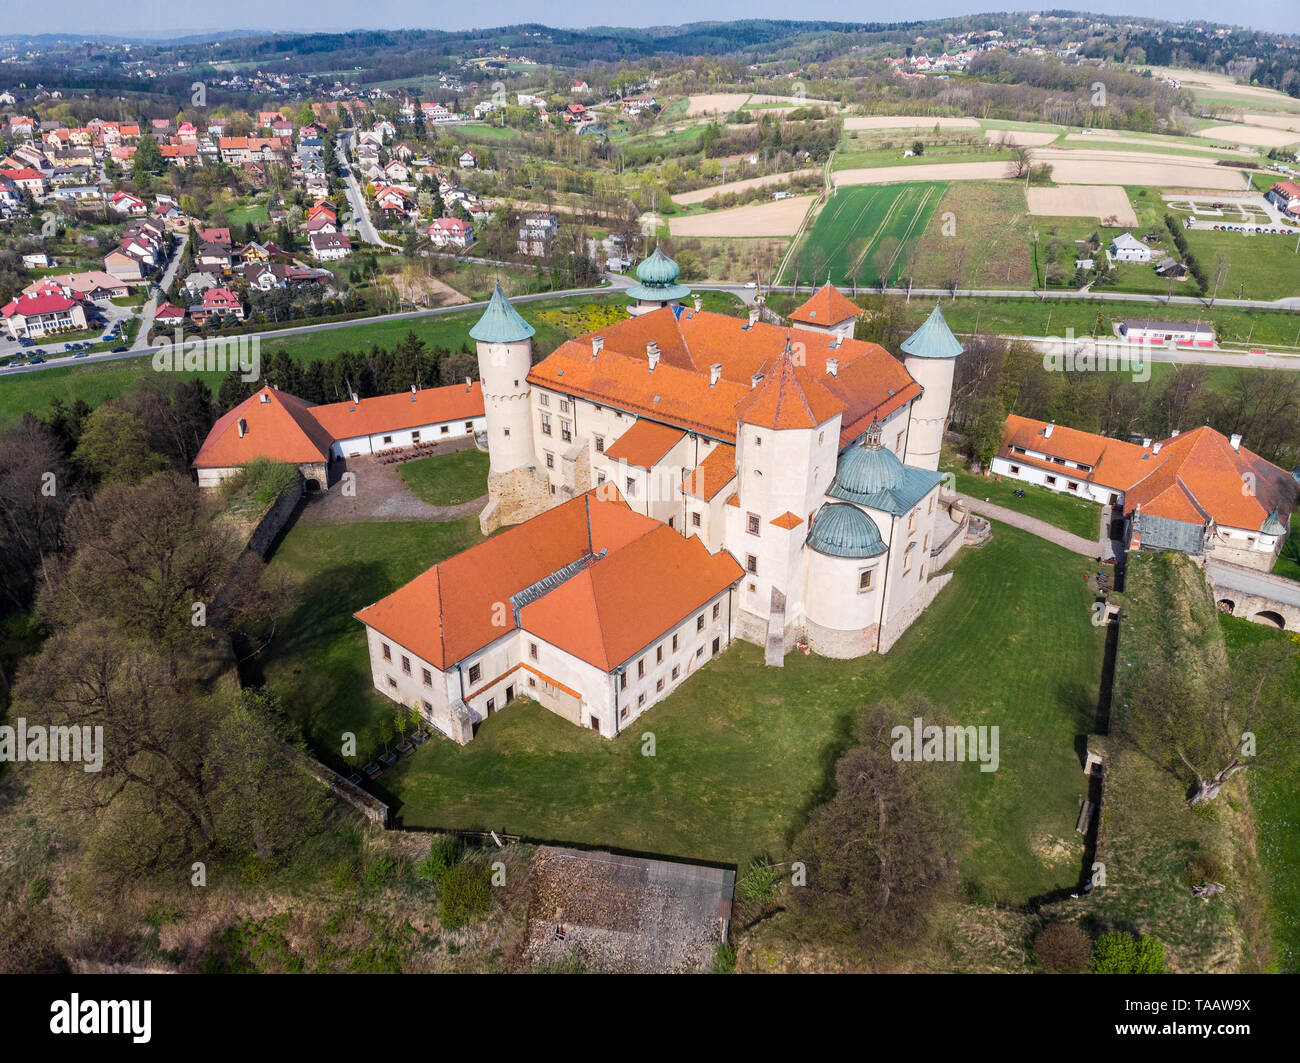 NOWY WISNICZ, POLAND - APRIL 25, 2019: Aerial view of Renaissance and Baroque Castle in Nowy Wisnicz, near Tarnow, in spring scenery,Poland. Stock Photo